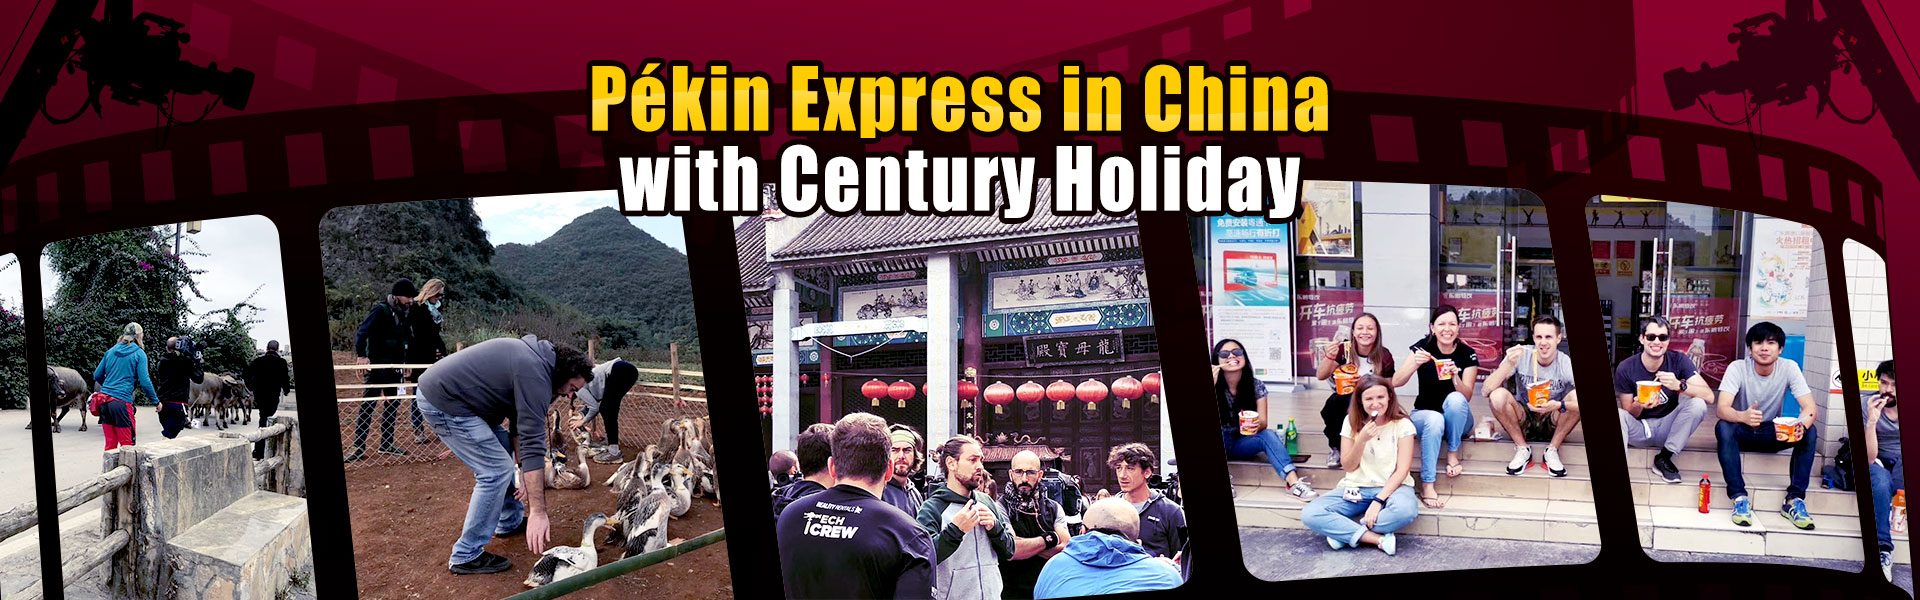 Pékin Express in China with Century Holiday